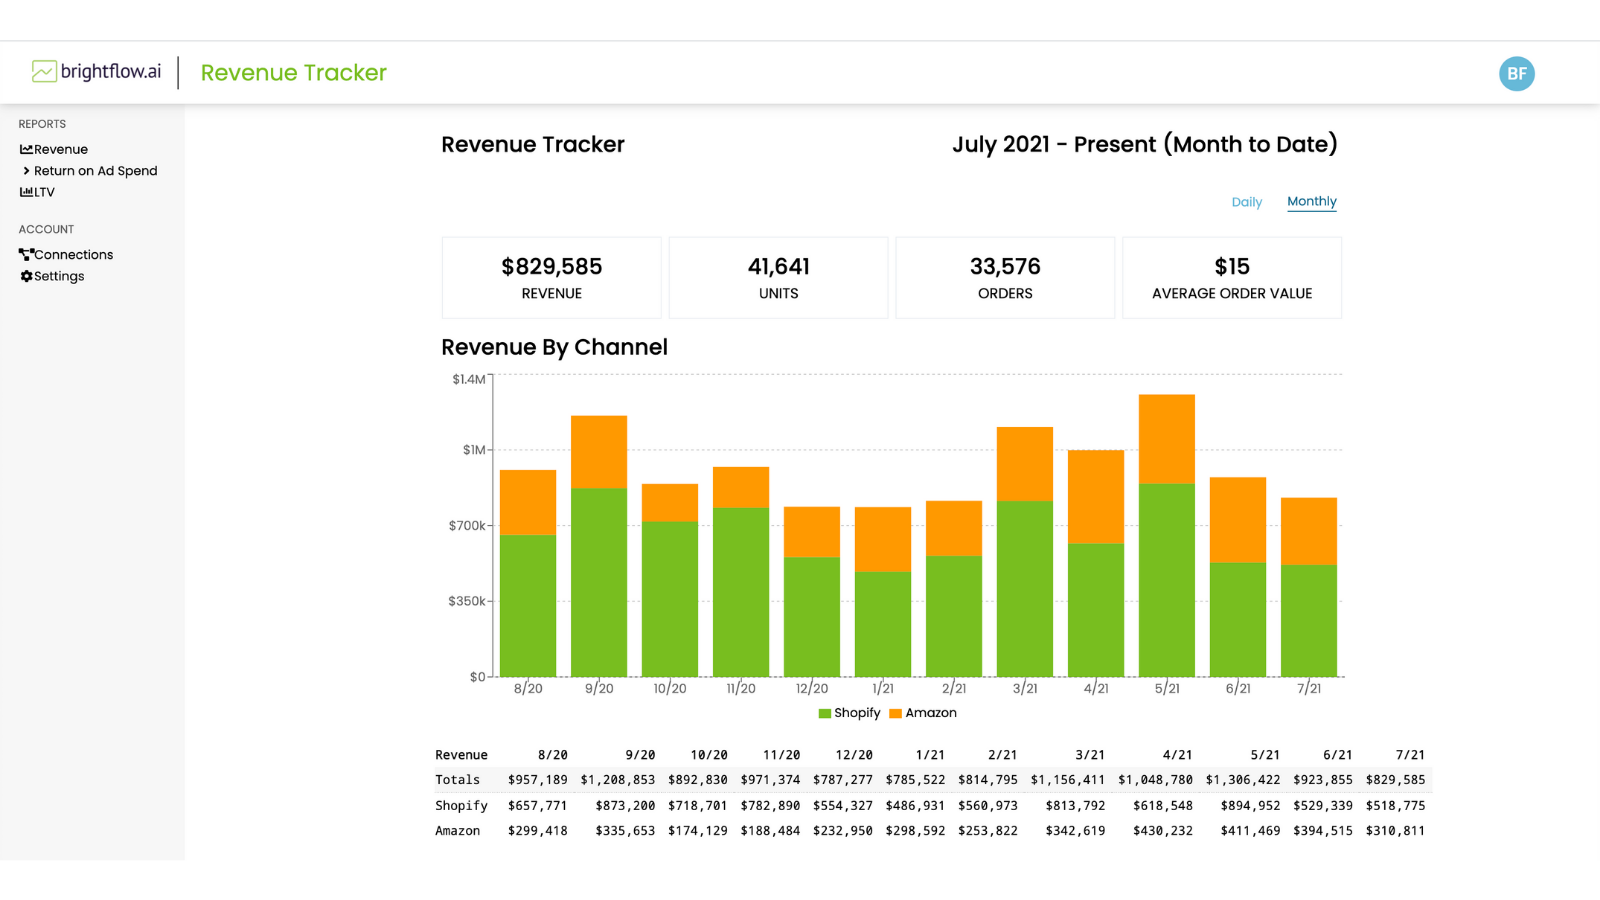 Track daily and monthly revenue across all channels